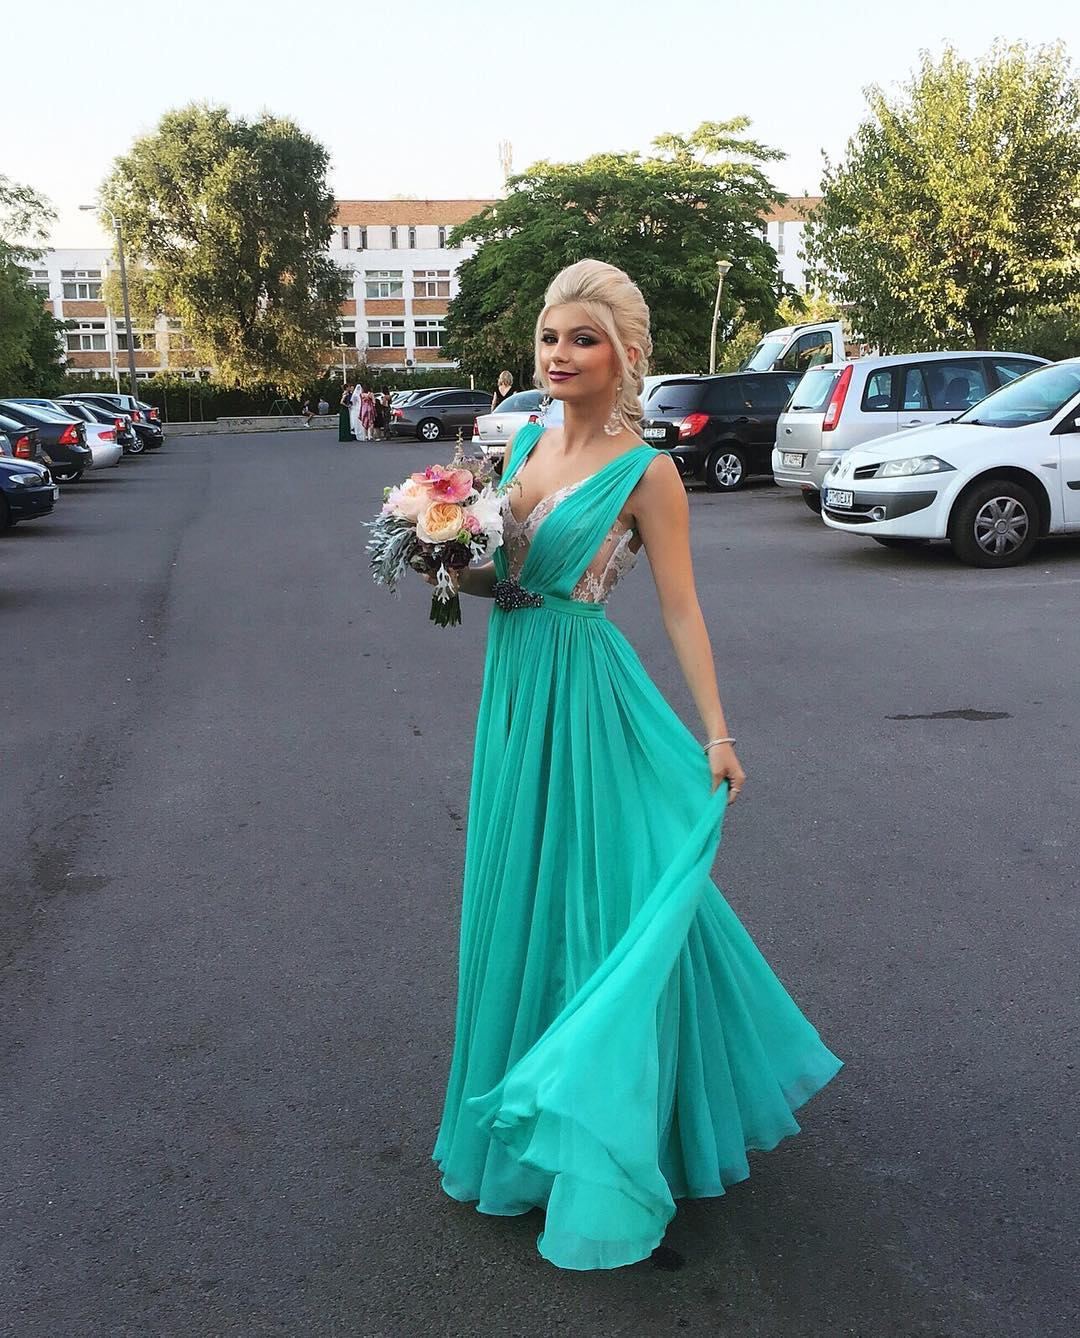 Bridesmaid Long turquoise dresses with bouquet